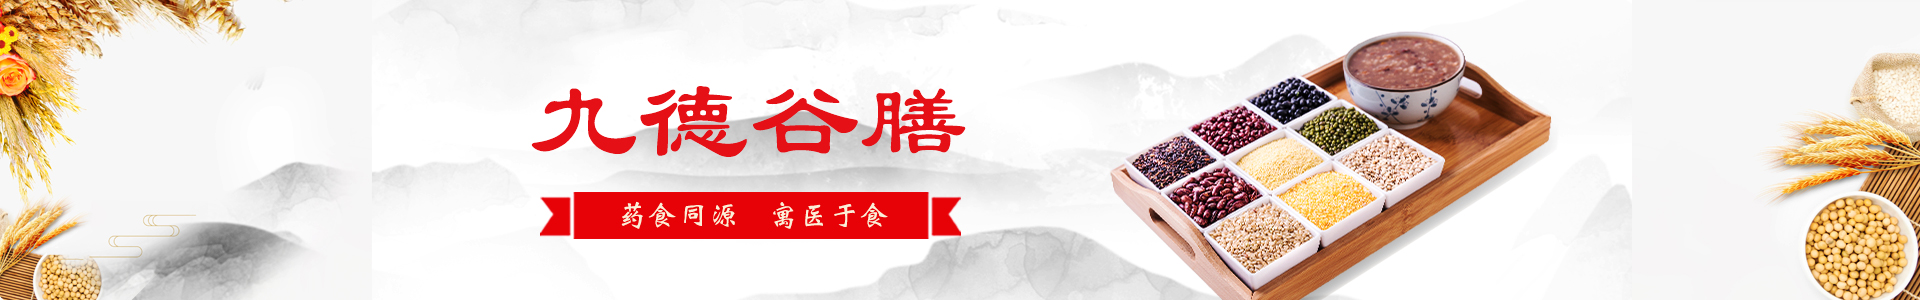 http://www.hnxingtai.cn/data/upload/201911/20191121141401_607.jpg